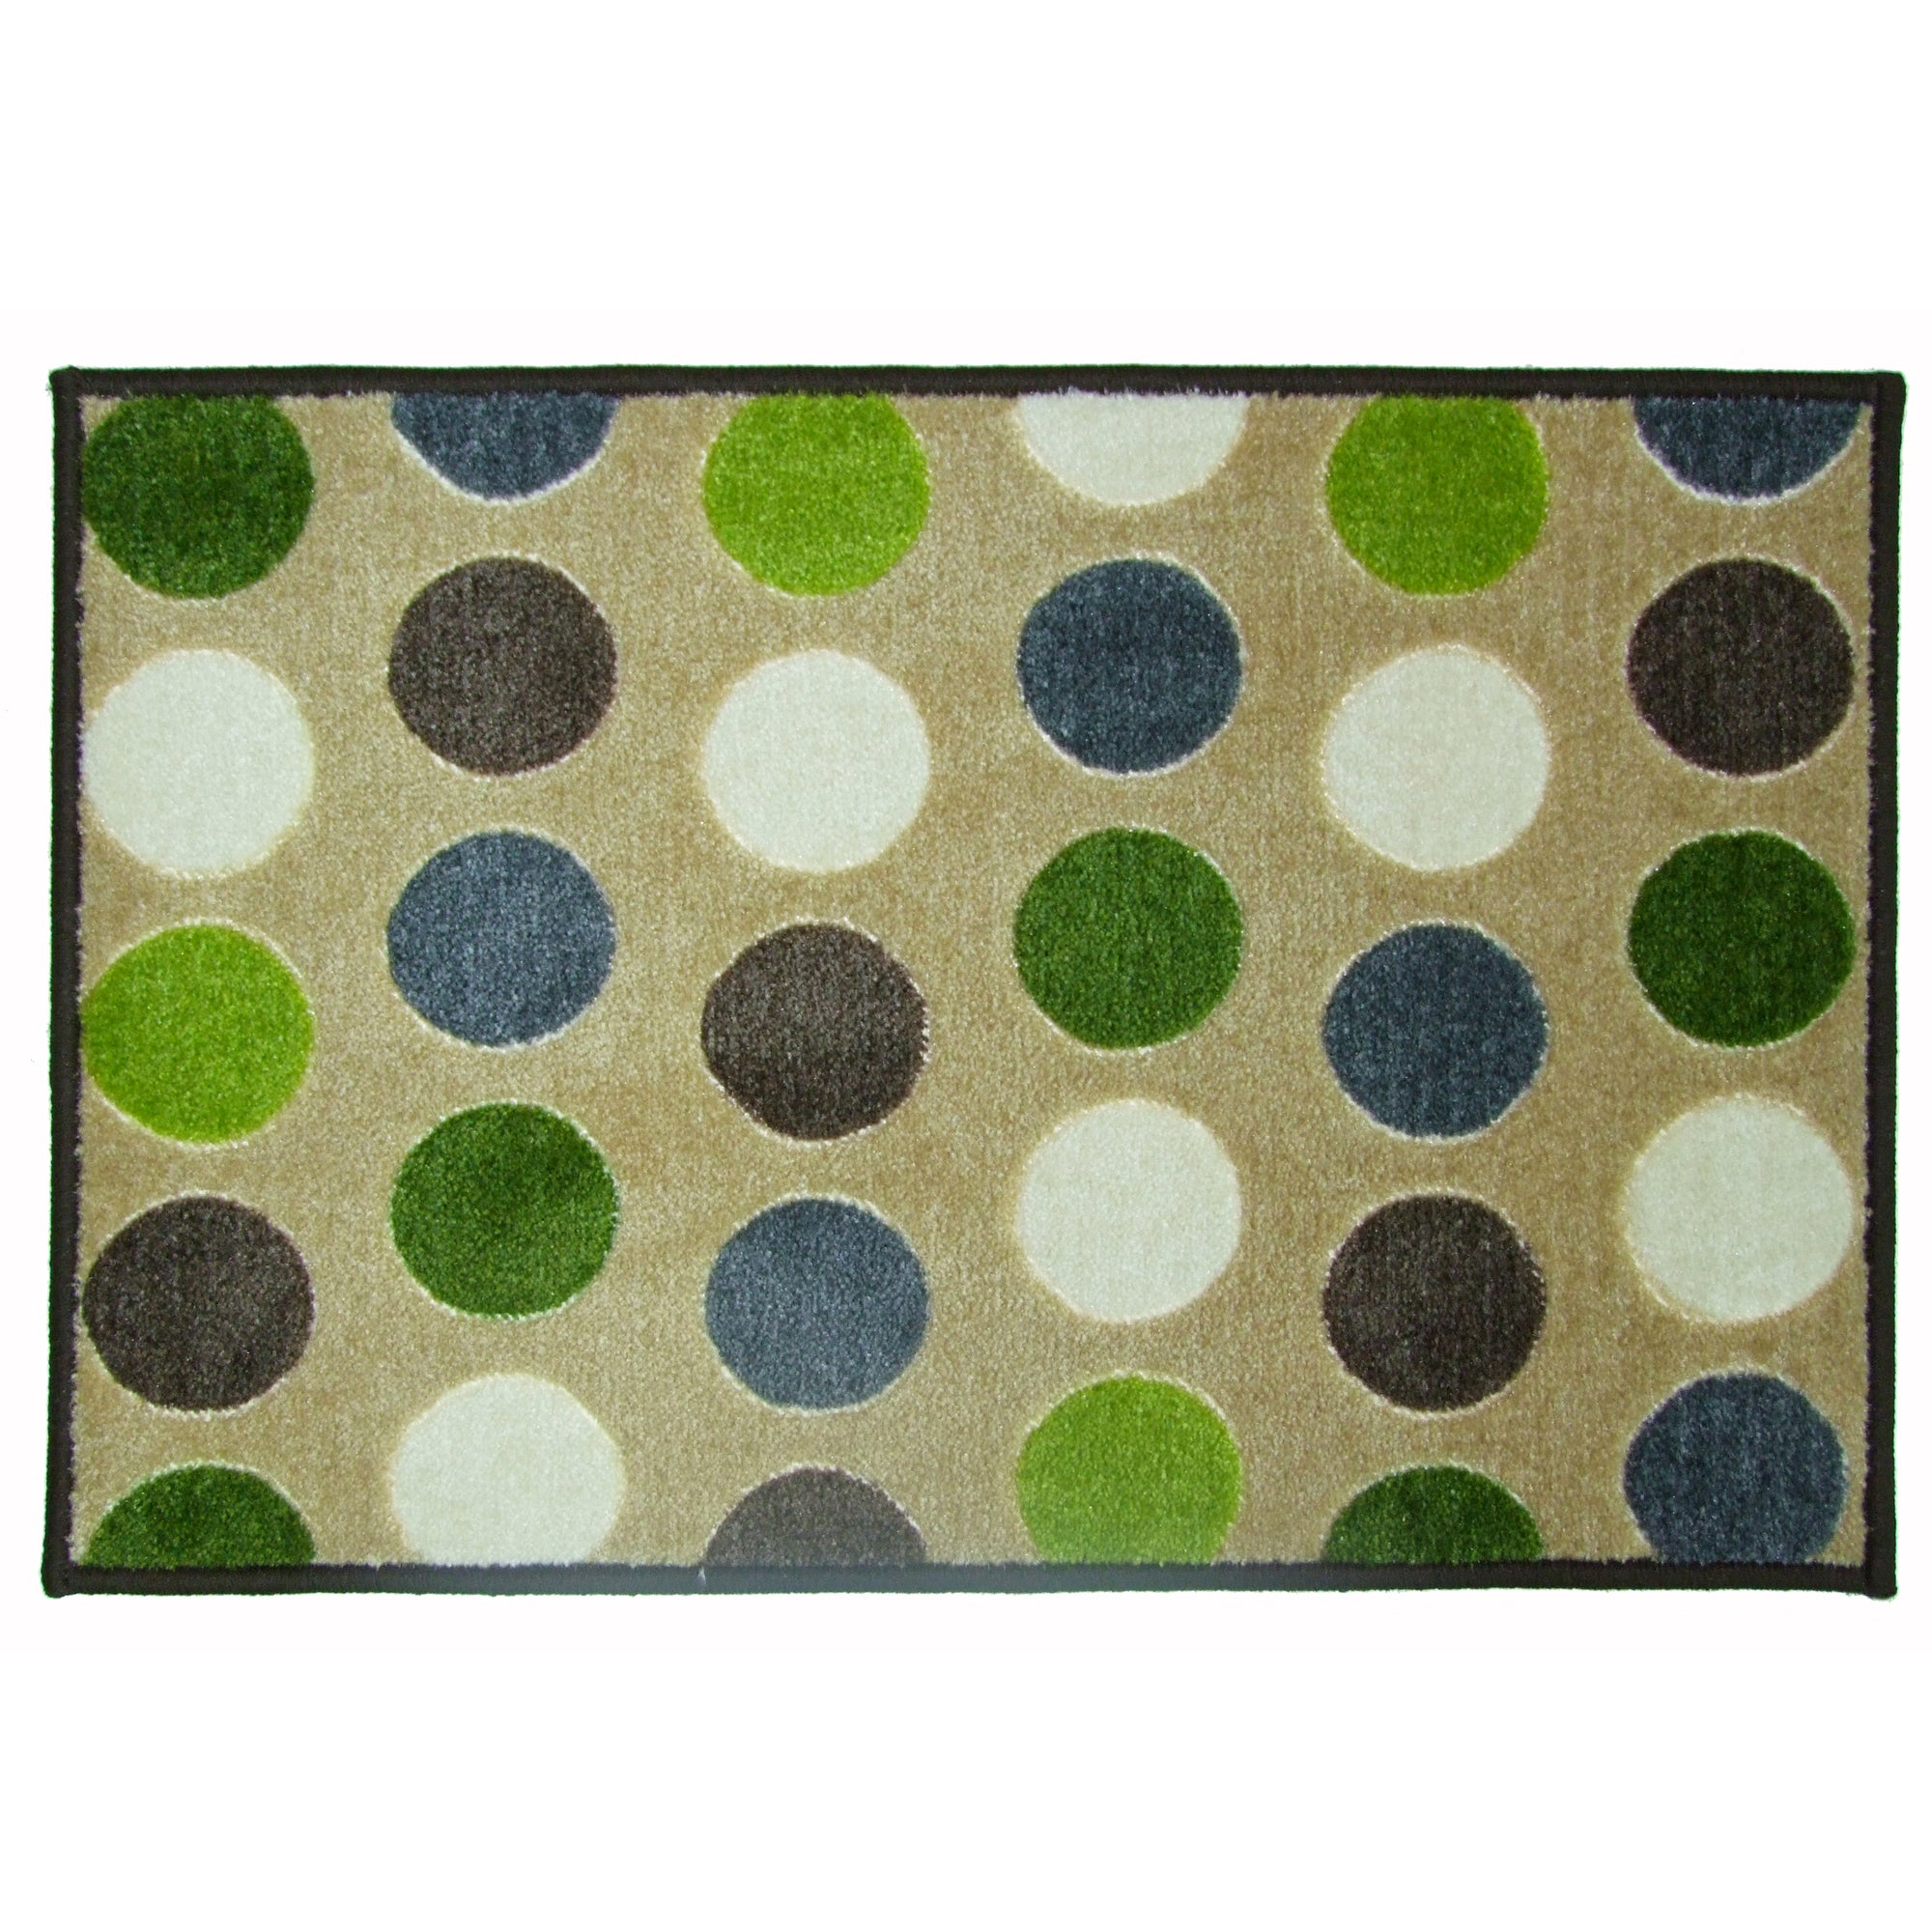 Polka Dot Super Soft Washable Doormat